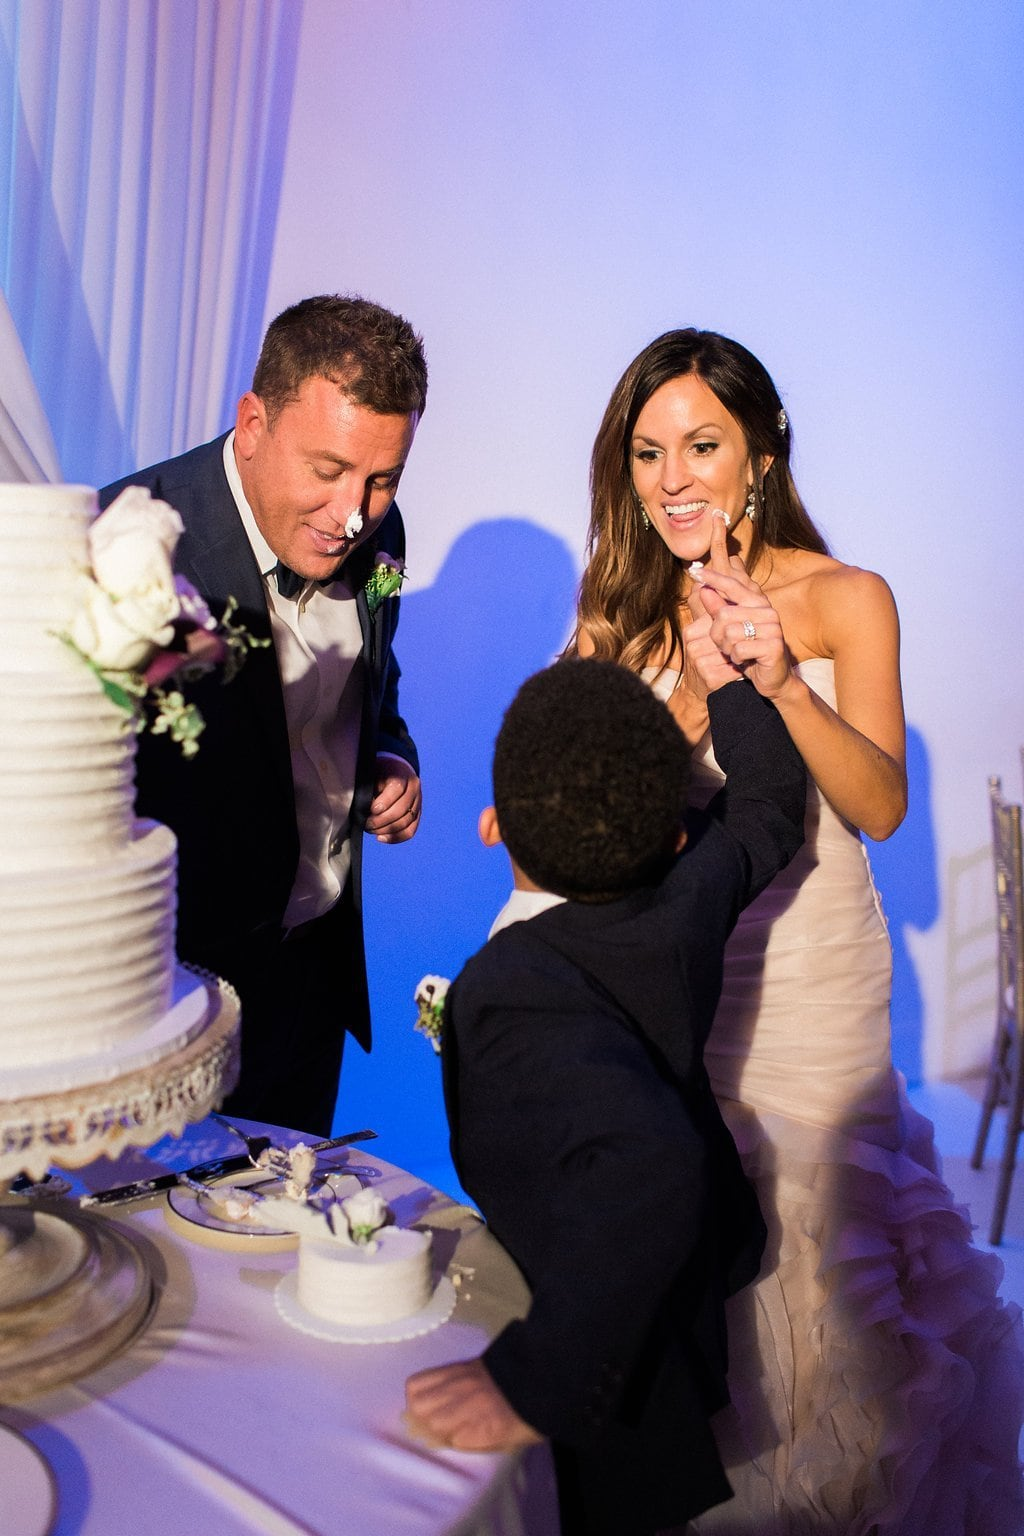 Cake cutting during reception at J. Verno Studios in Pittburgh - J Verno Studios Winter Wedding